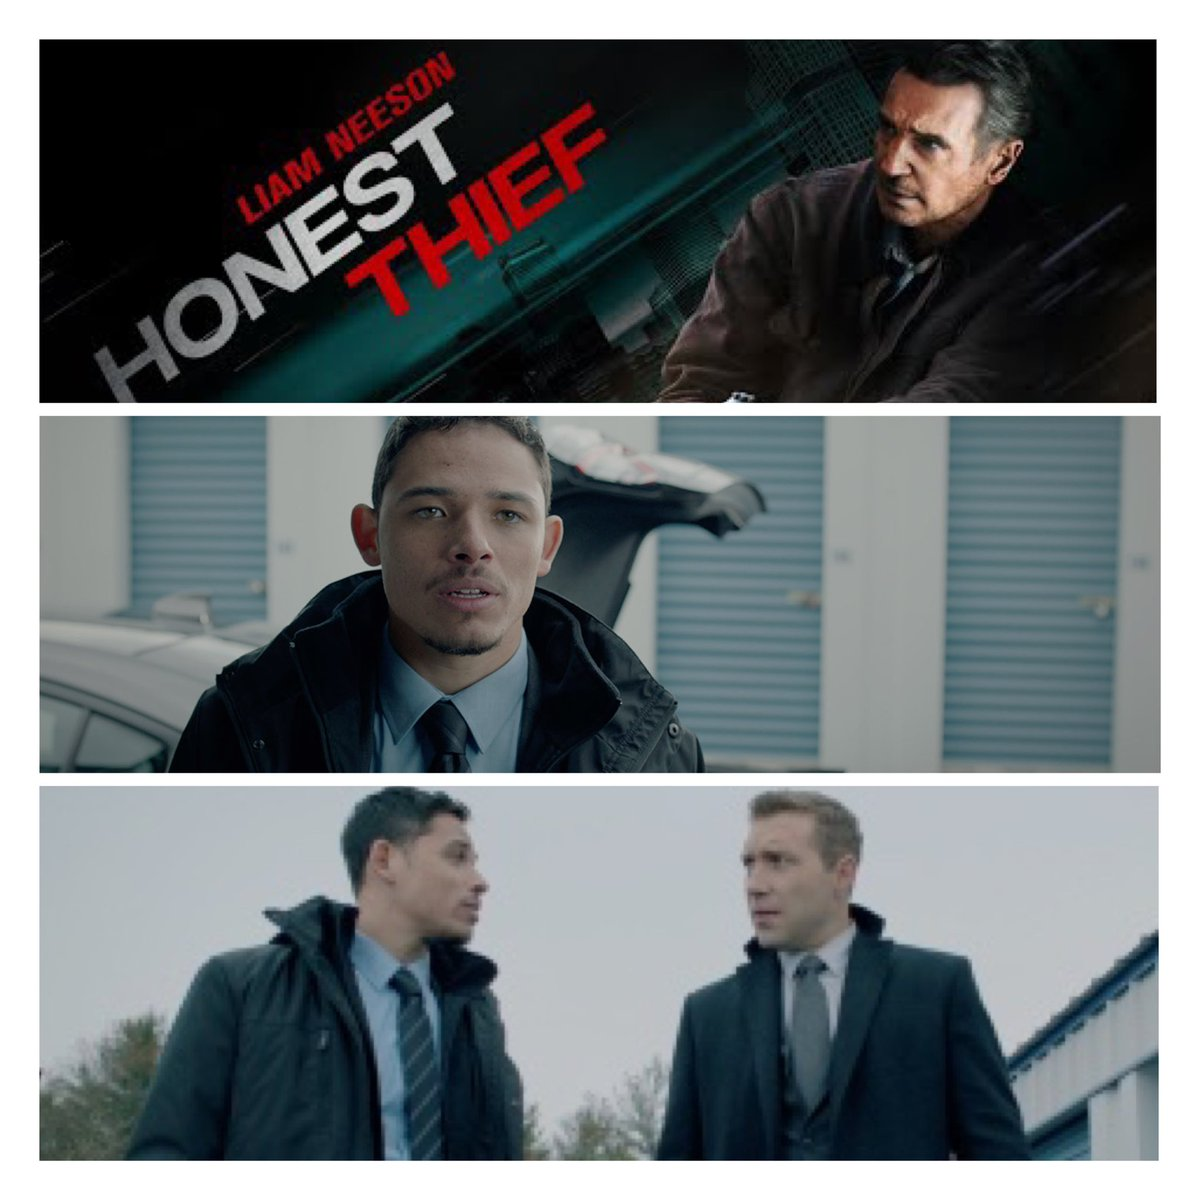 'HONEST THIEF' in theaters today. @ARamosofficial  ✊🏾🙌🏽 https://t.co/iln6nT01Ry